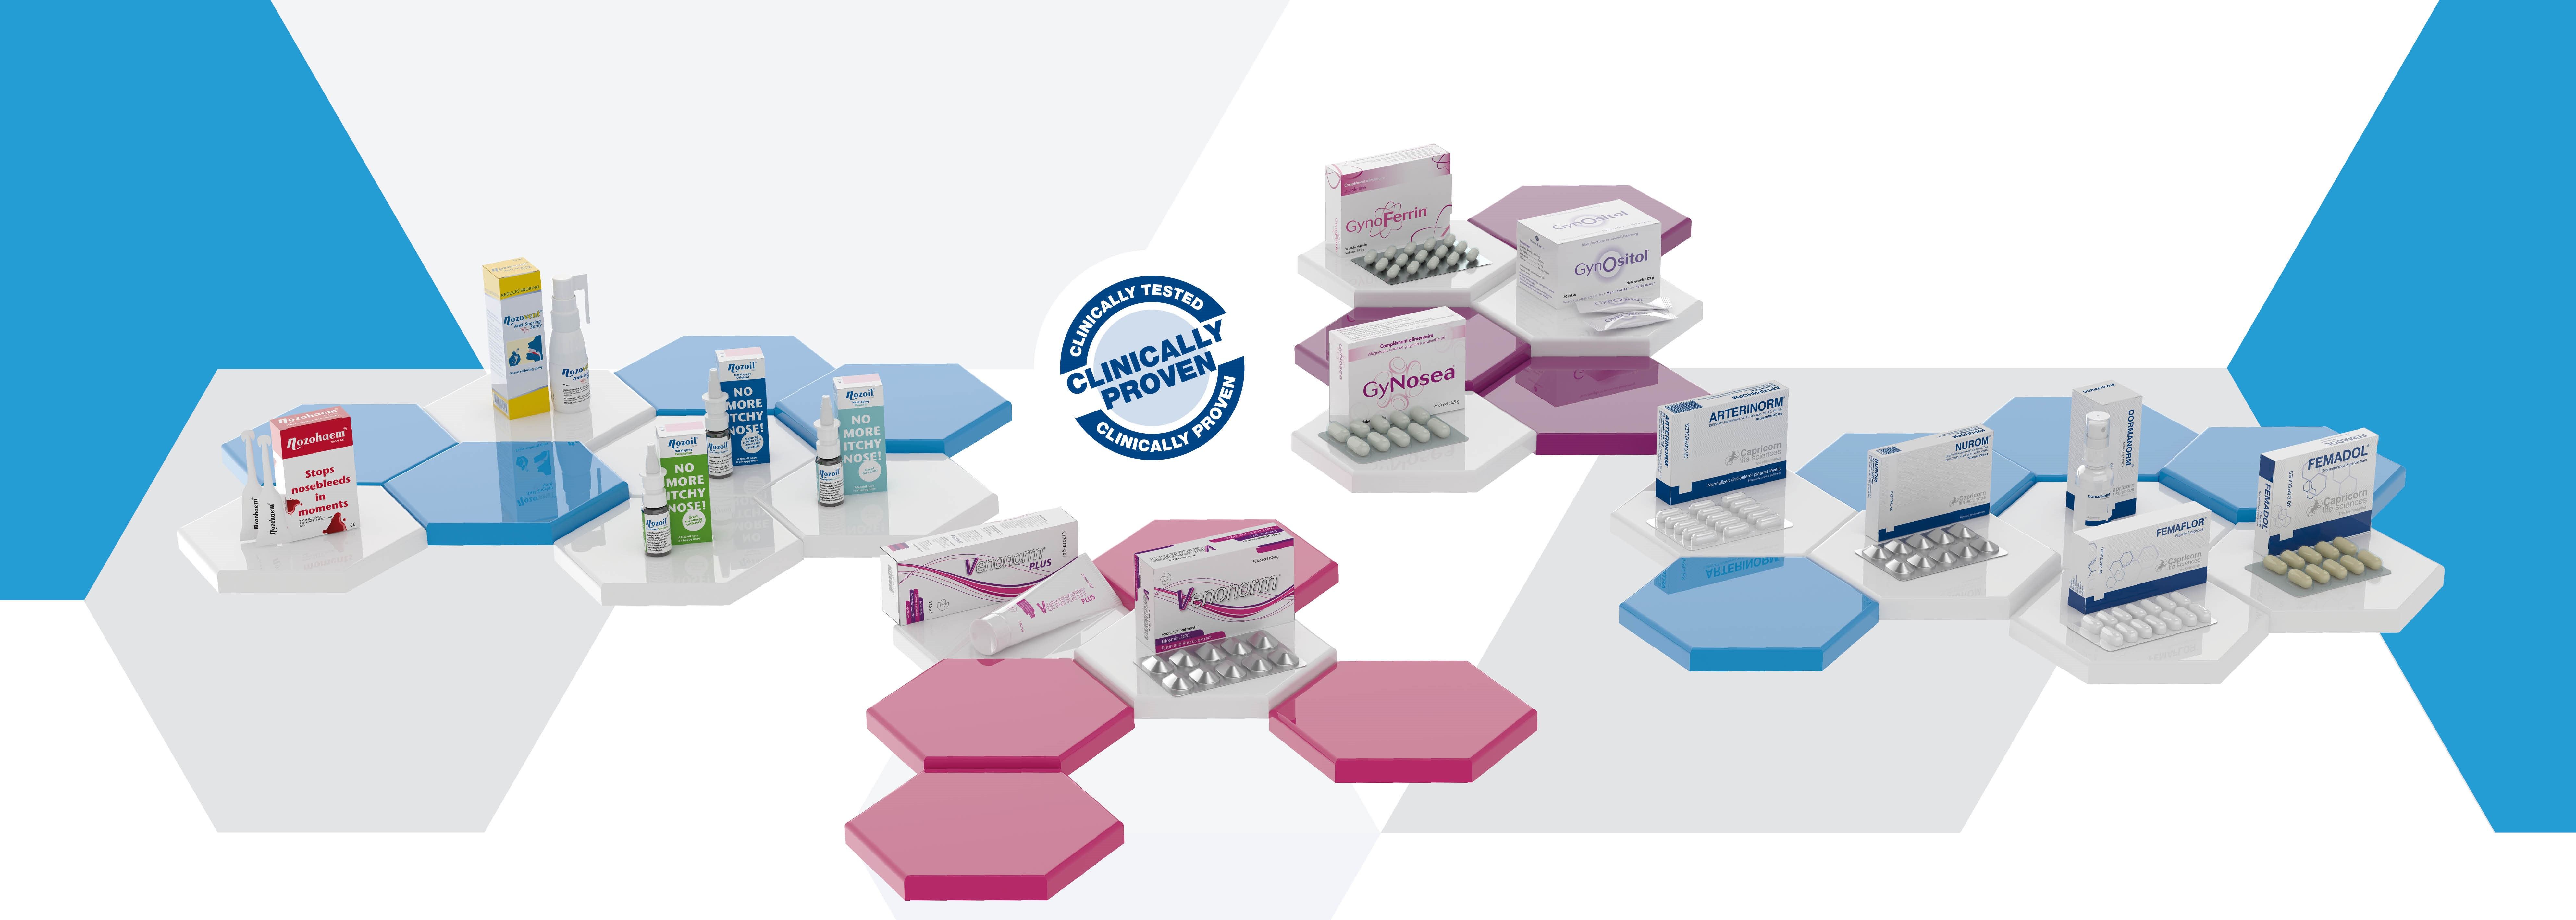 PROSTAQRE tablets